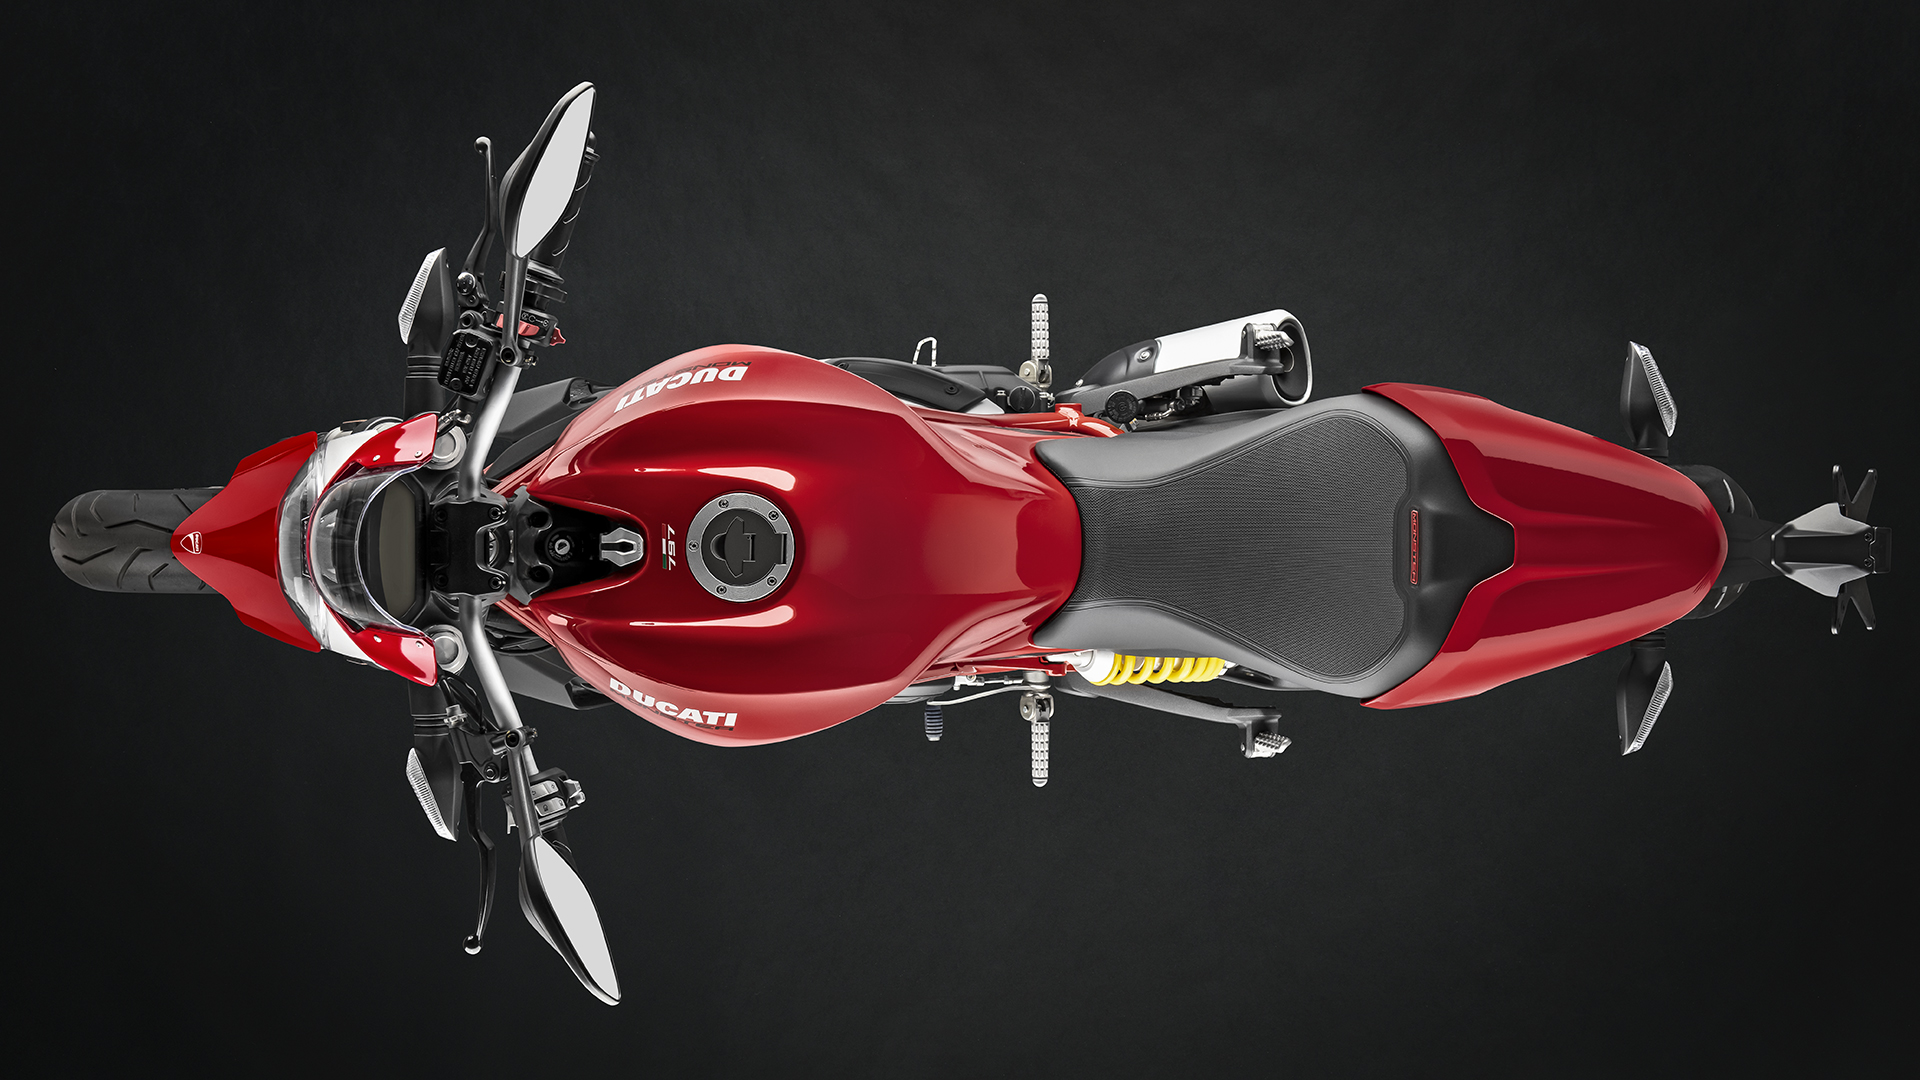 Ducati Monster 797 The Legendary Italian Naked With New Graphics